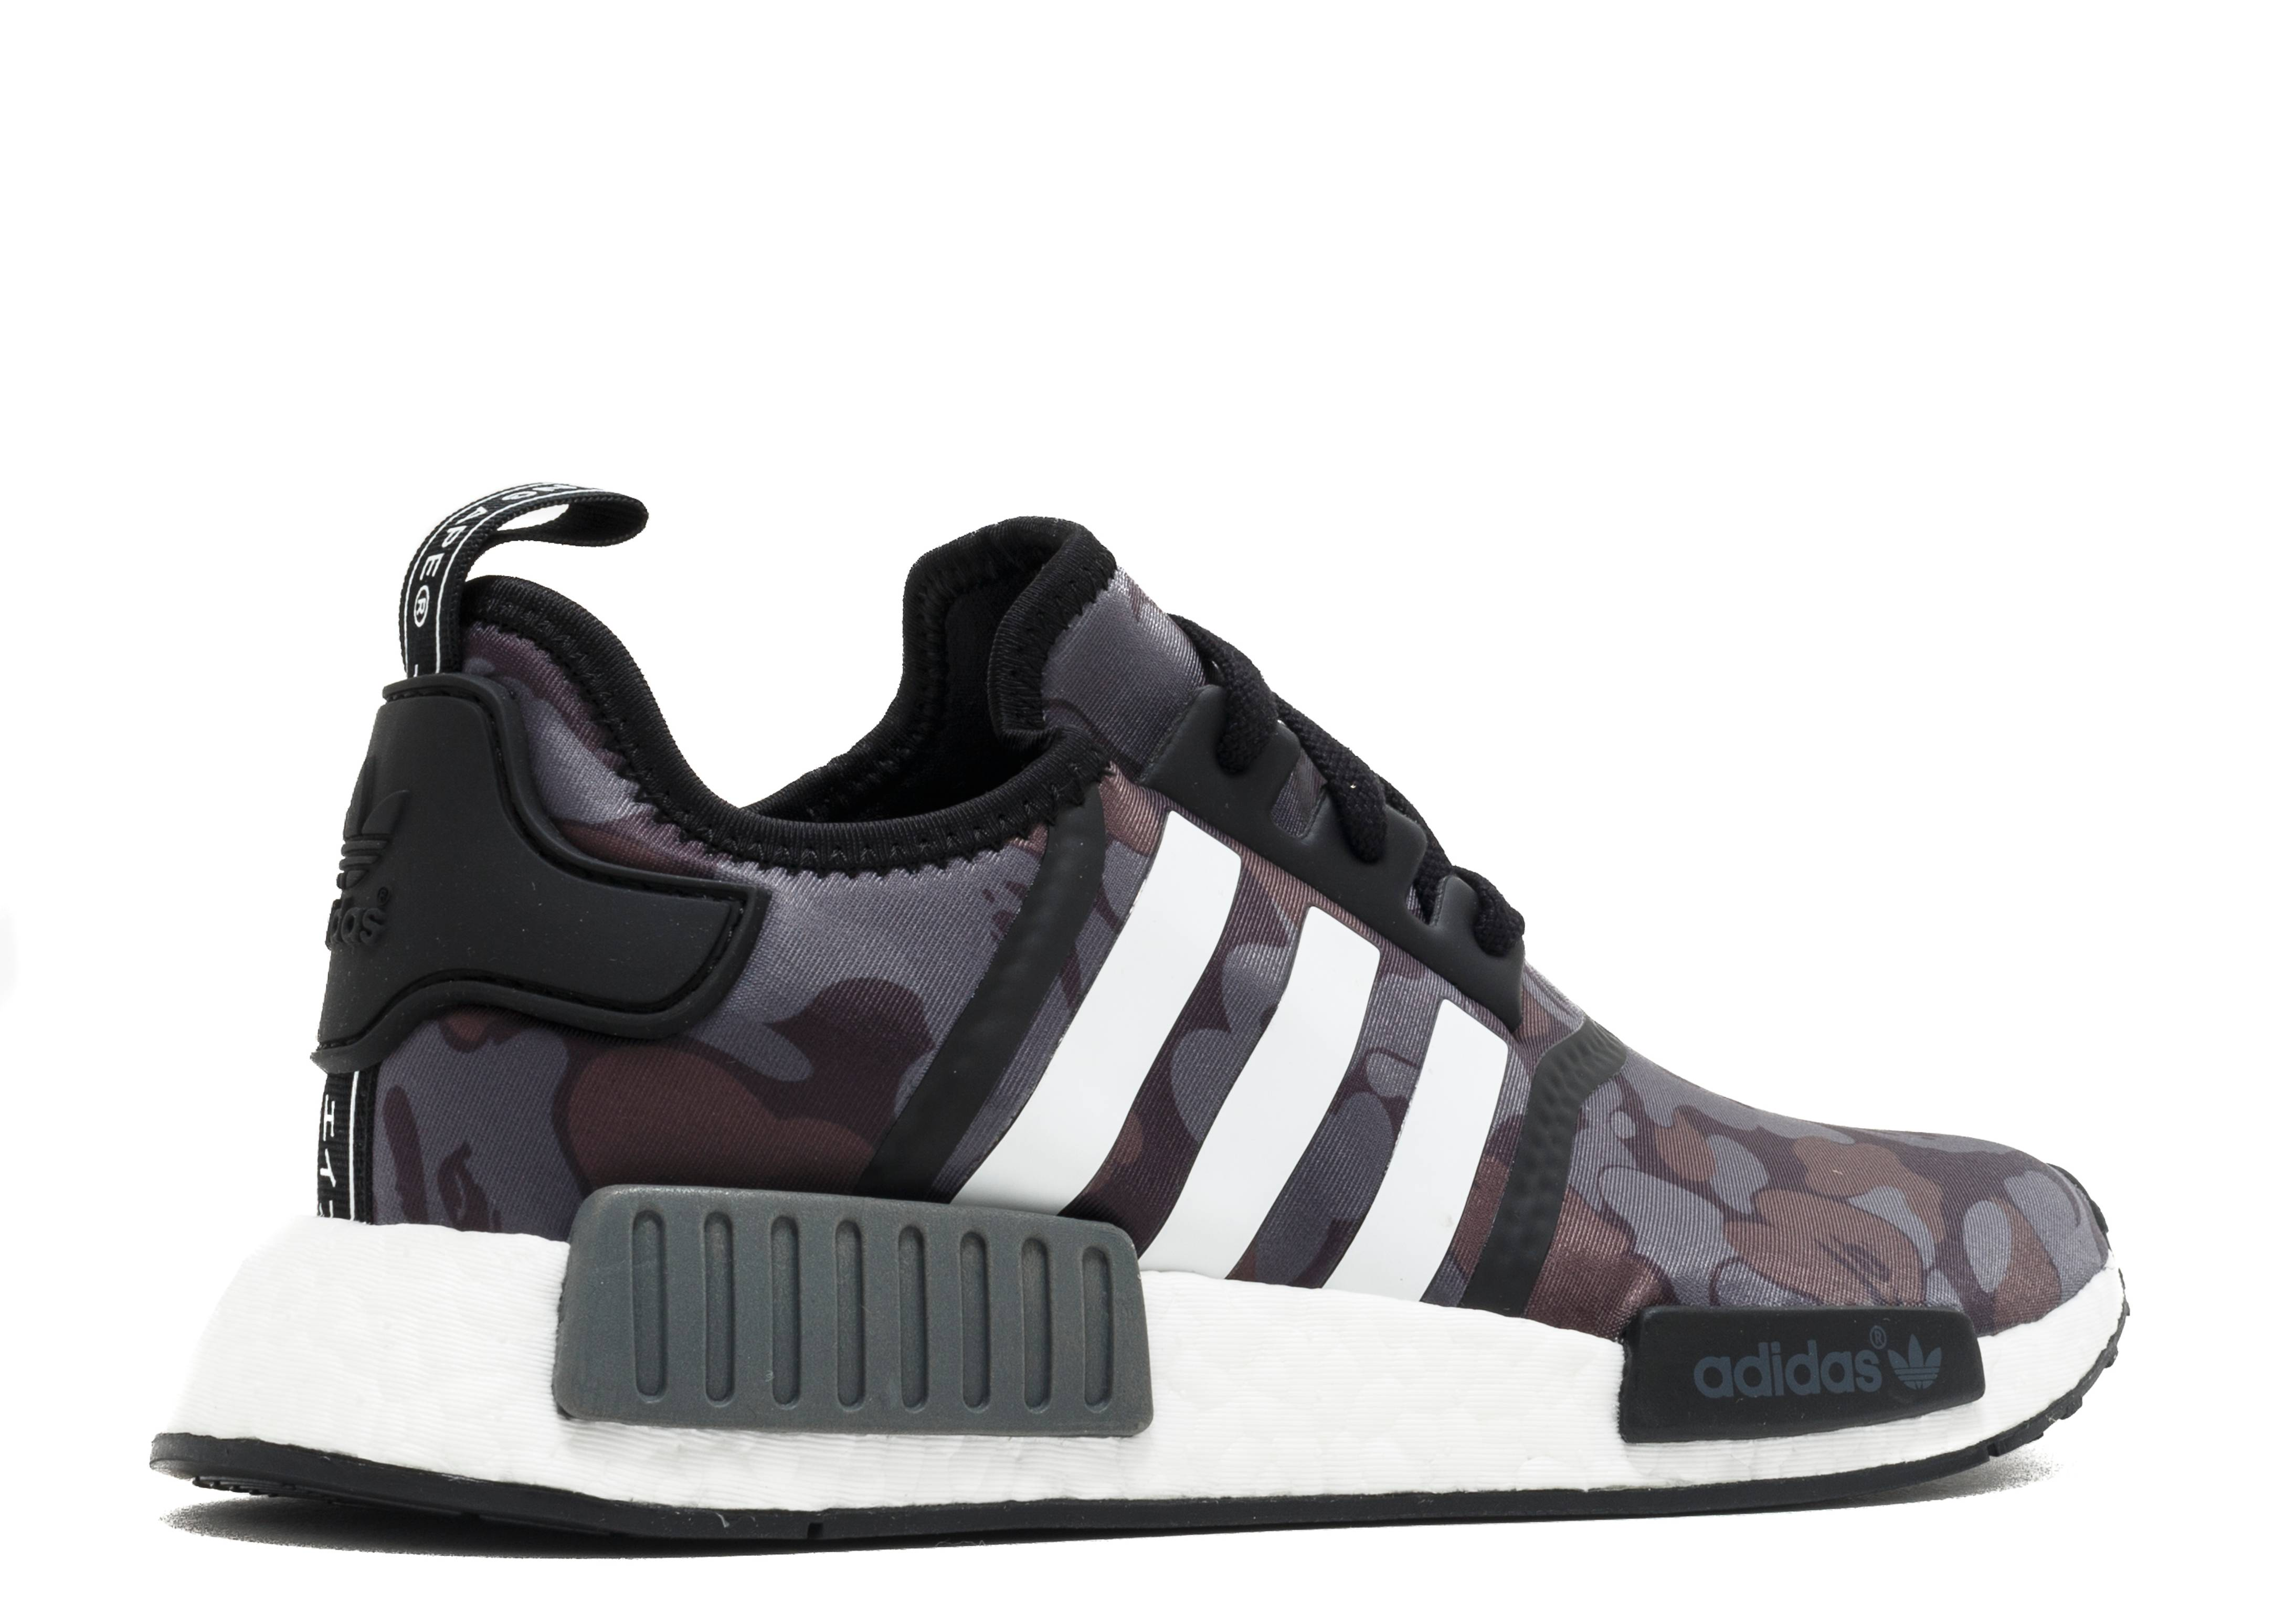 Cheap Adidas NMD R1 Bape Boost Sale Outlet 2017